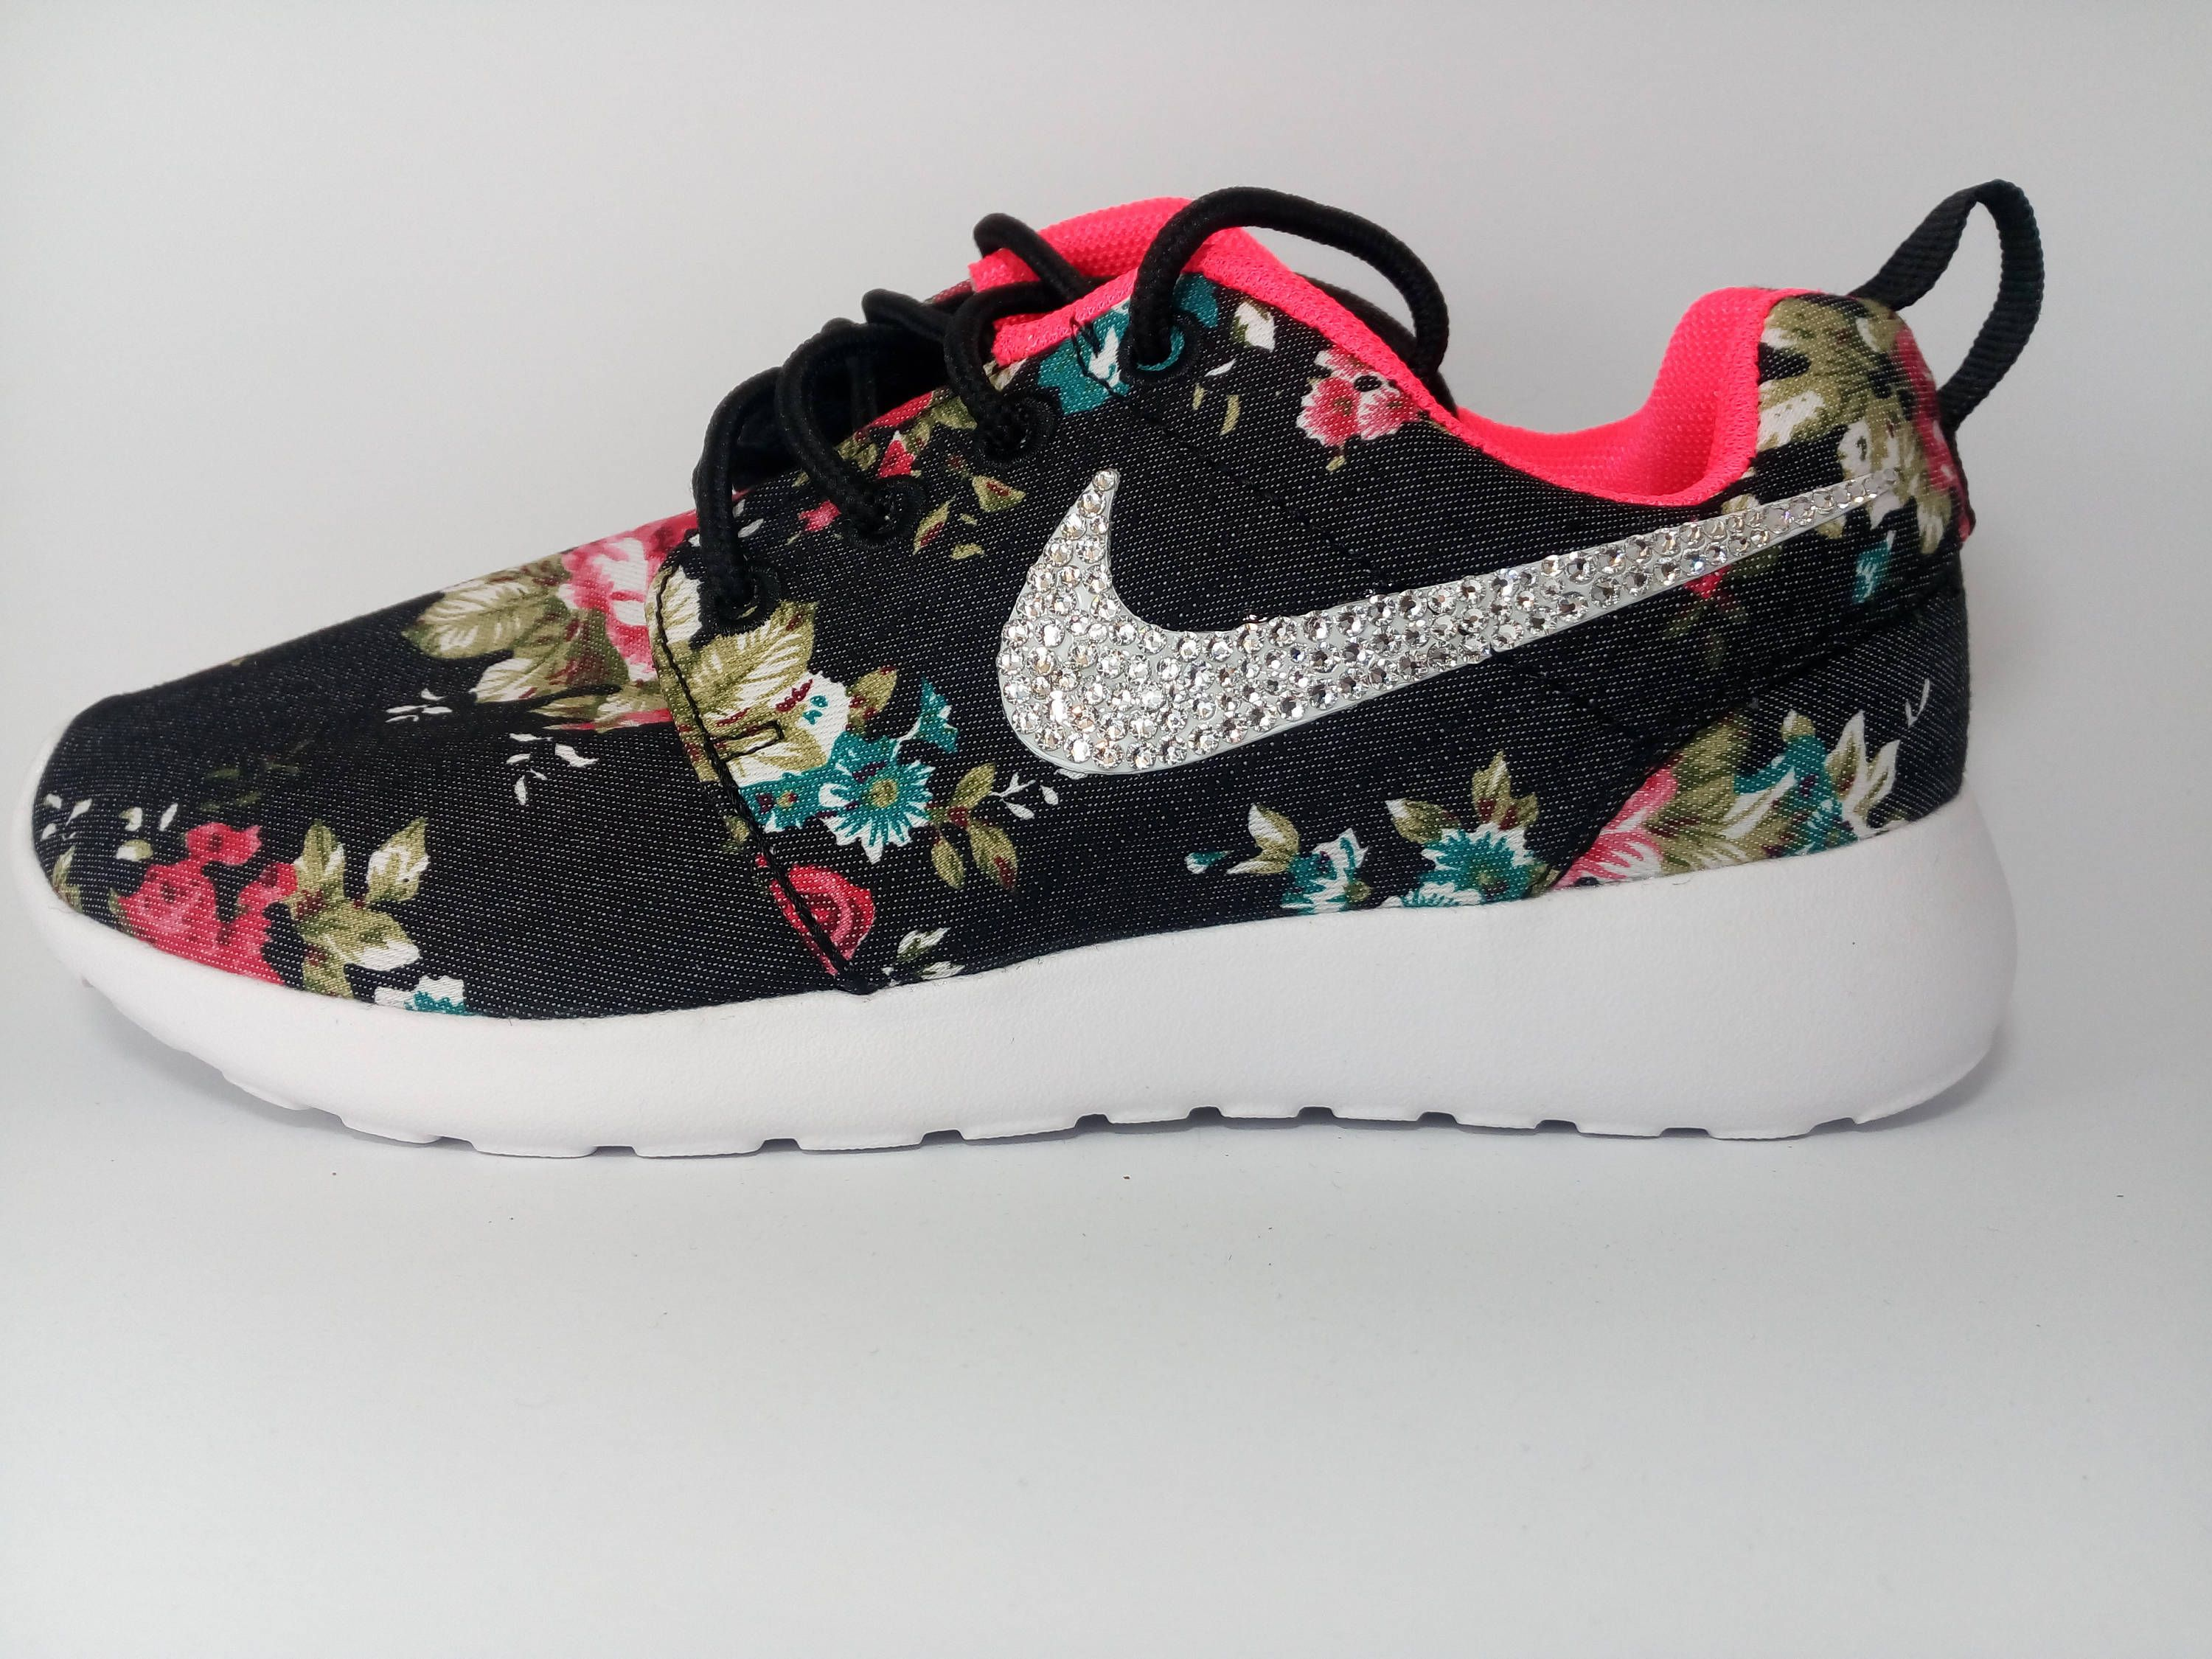 custom nike roshe run womens shoes black jeans fabric floral print blinged  with swarovski crystals nike